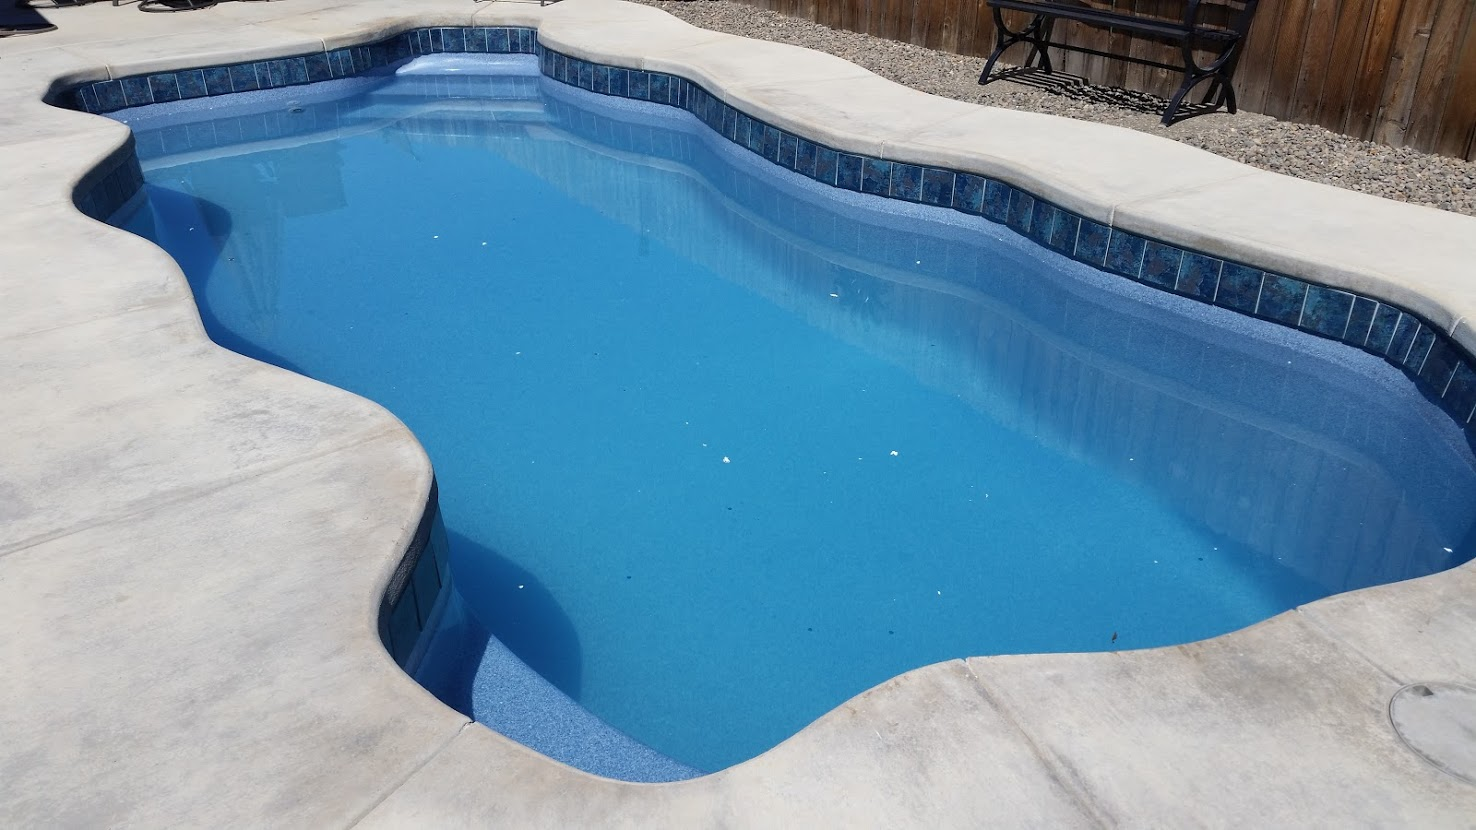 Upgrade to new tile on existing Key West pool by A Plus Pools